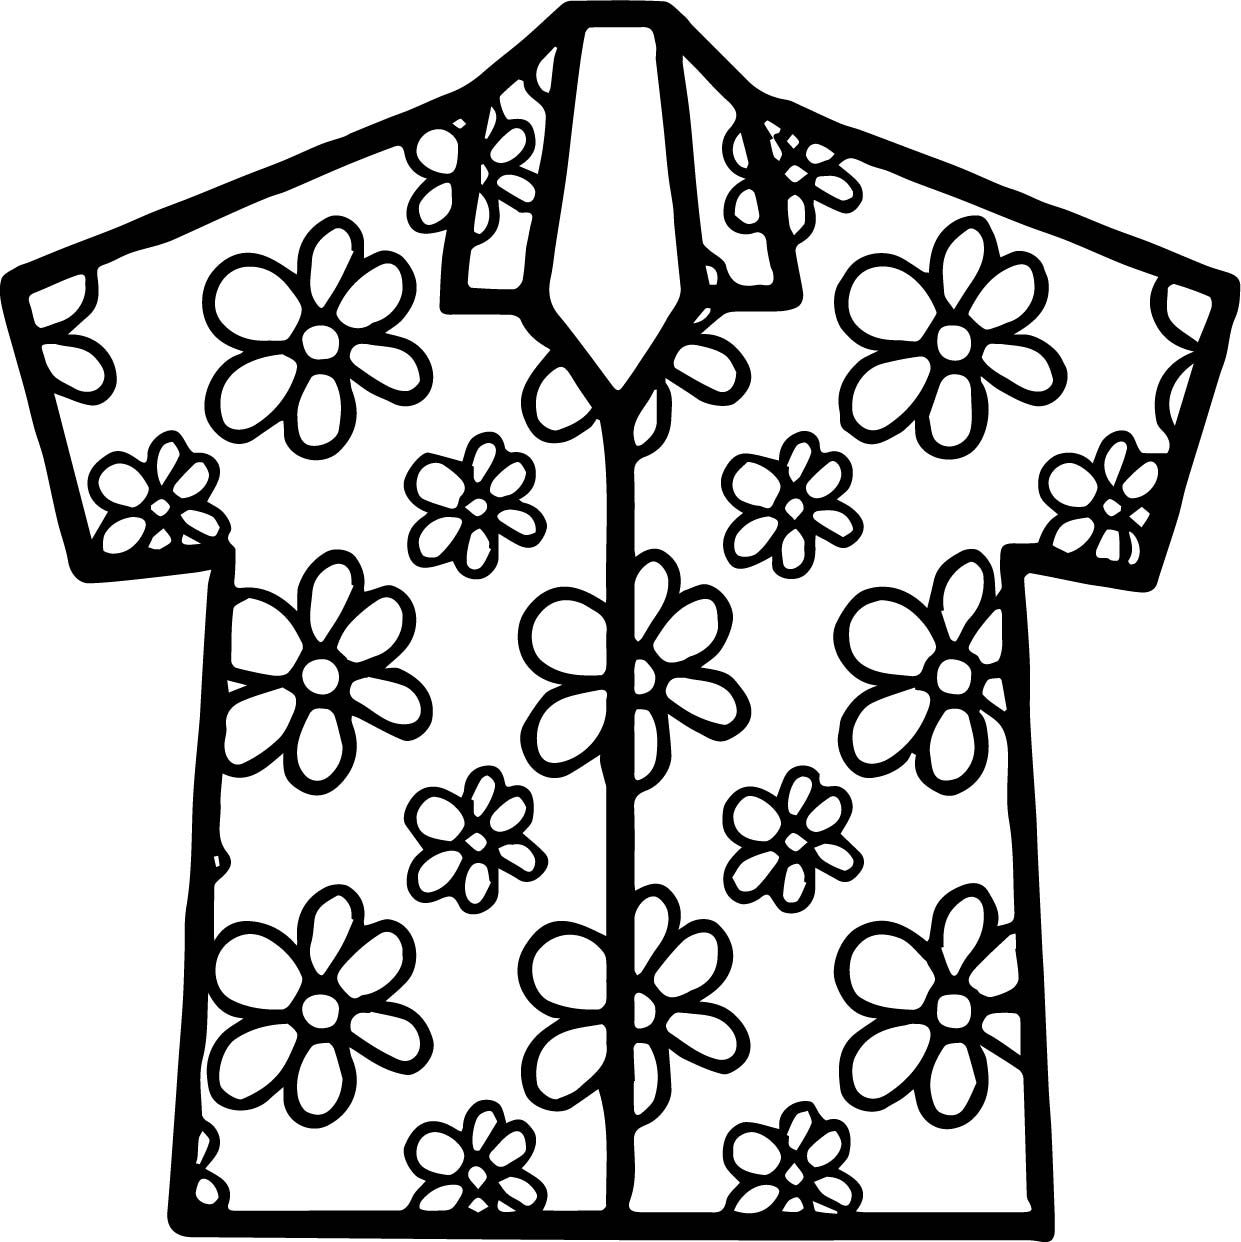 Awesome Hawaii Shirt Coloring Page Coloring Pages Printable Flash Cards Free Printable Coloring Pages